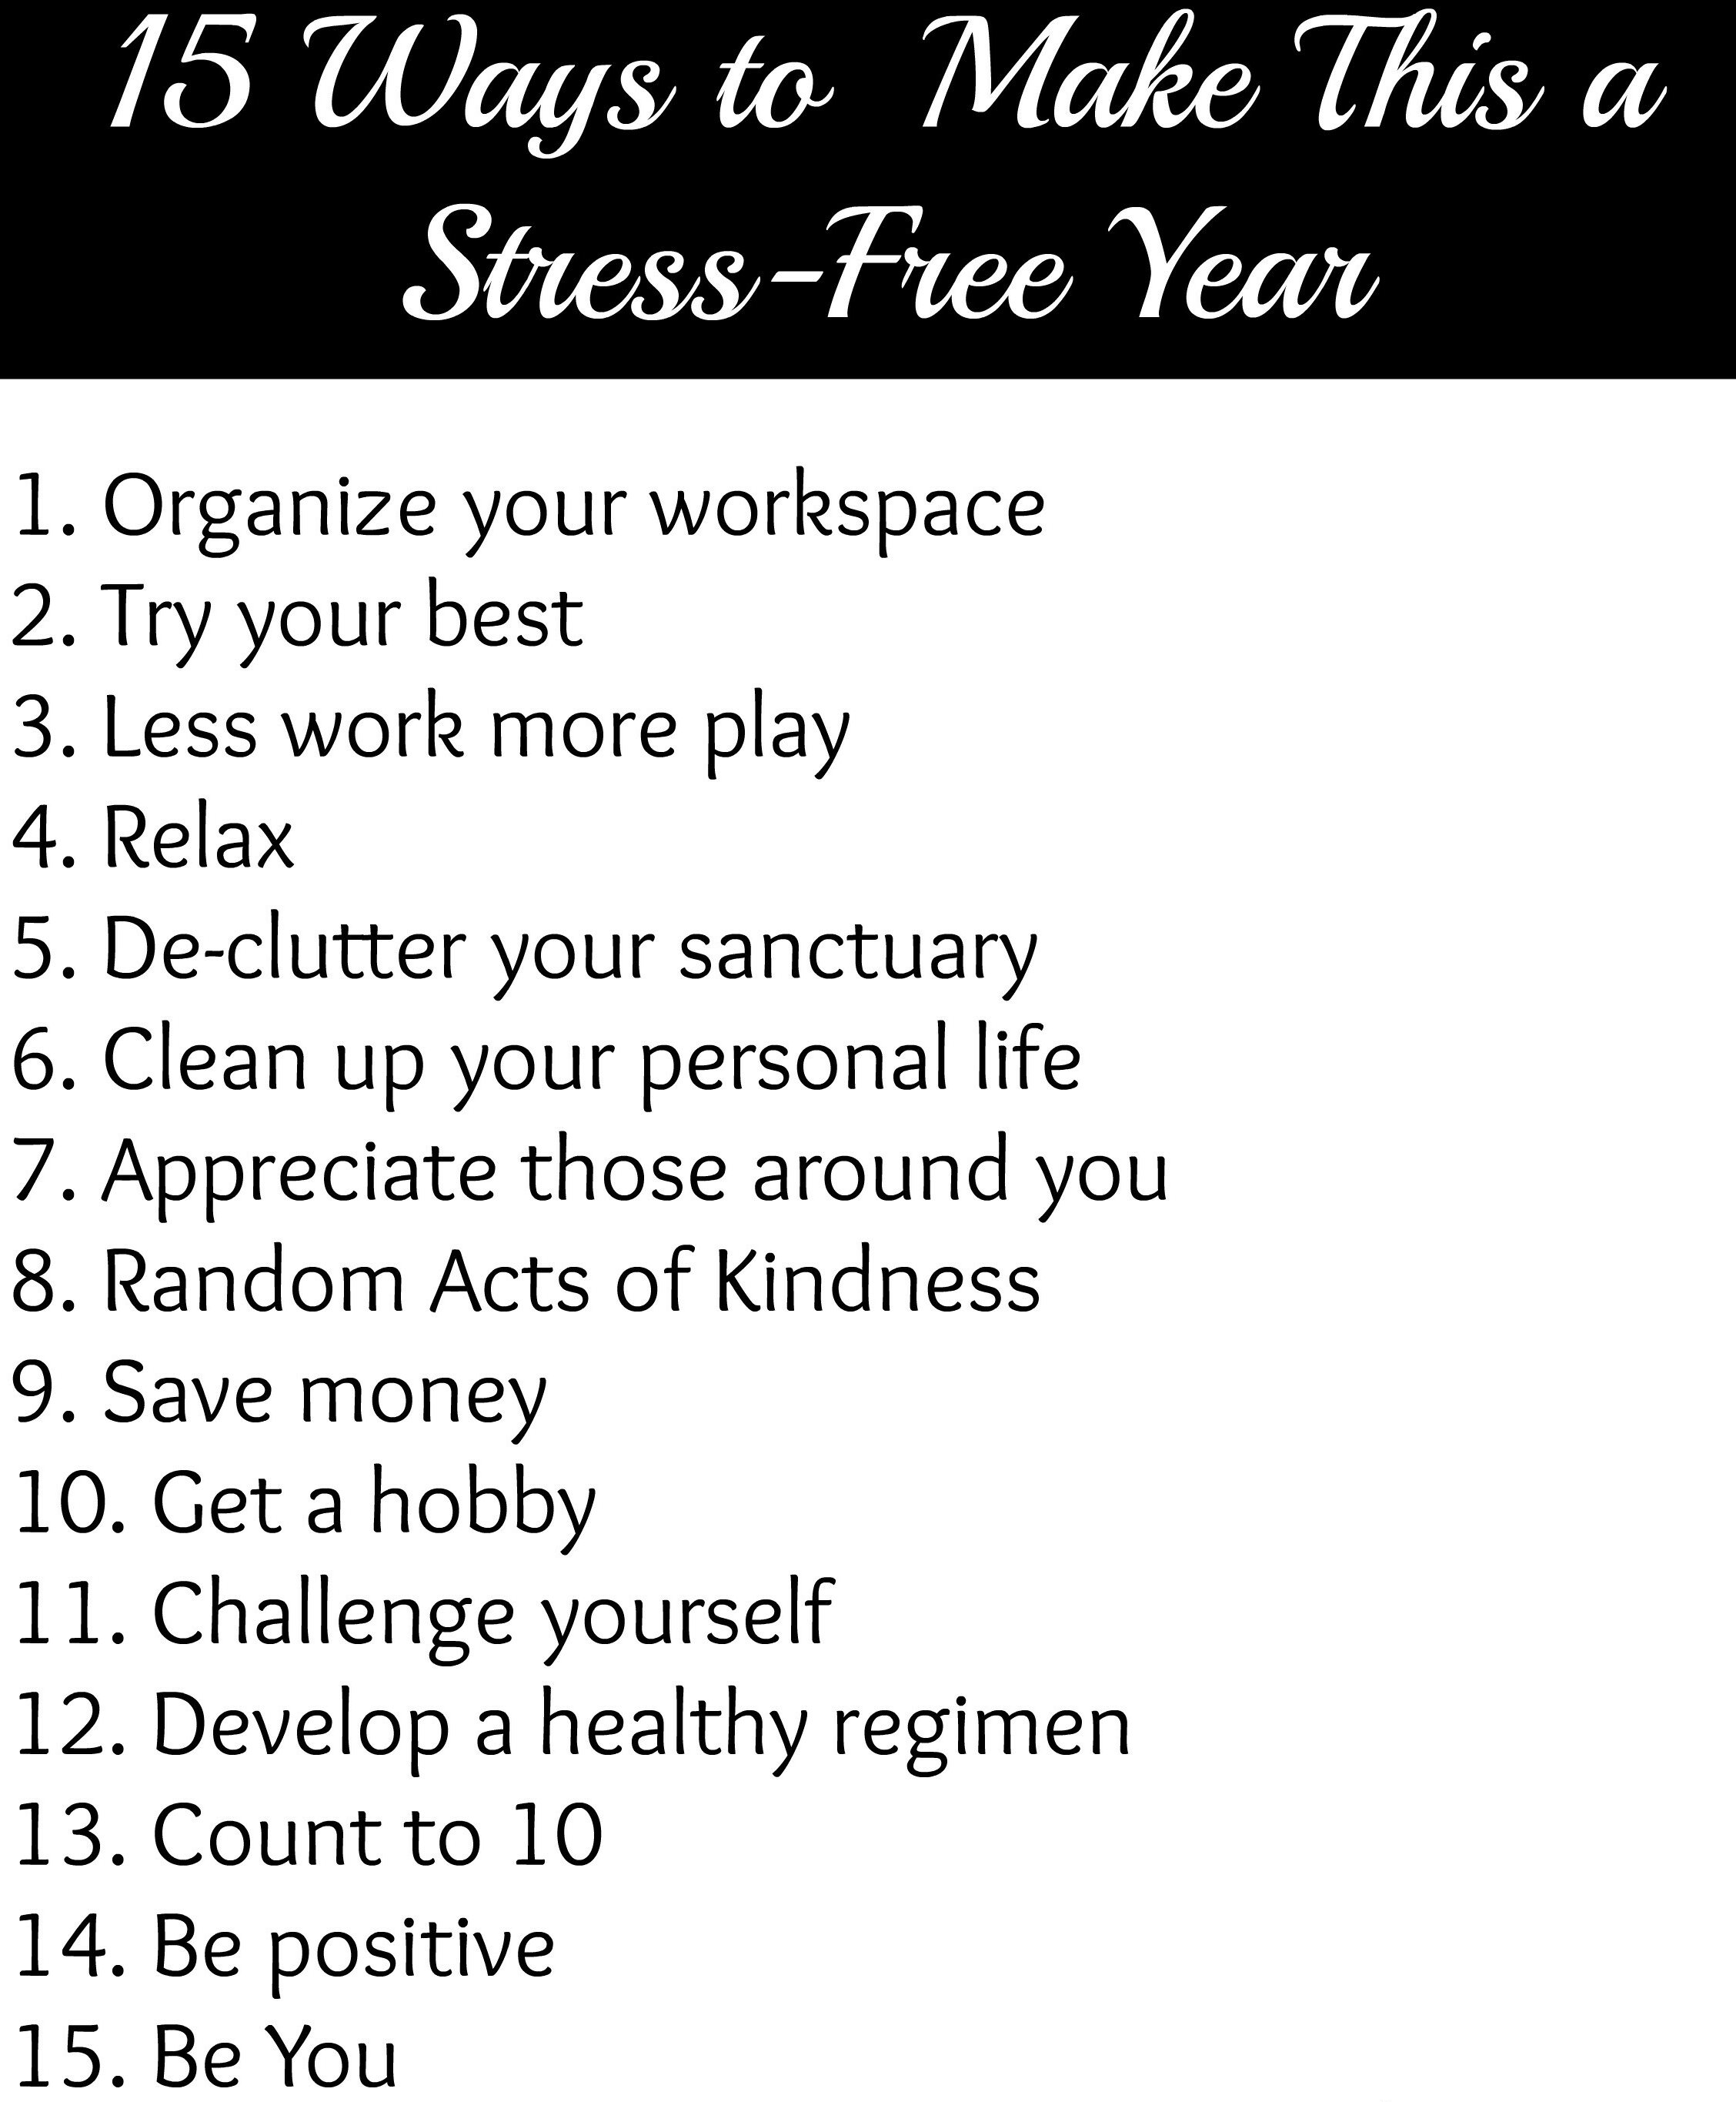 15-Ways-to-Make-This-a-Stress-Free-Year_1